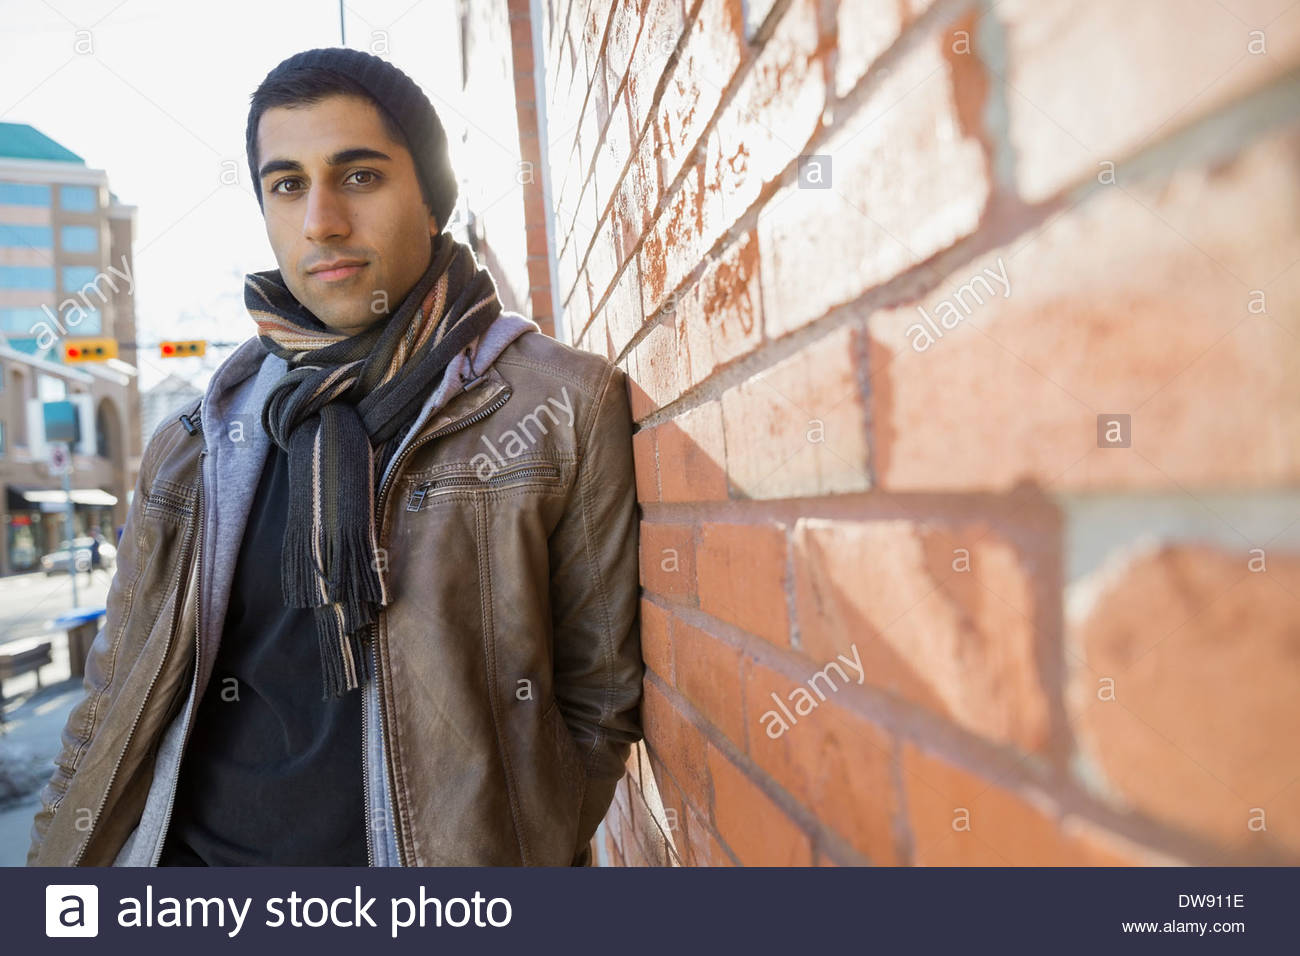 Portrait of confident man leaning against brick wall - Stock Image